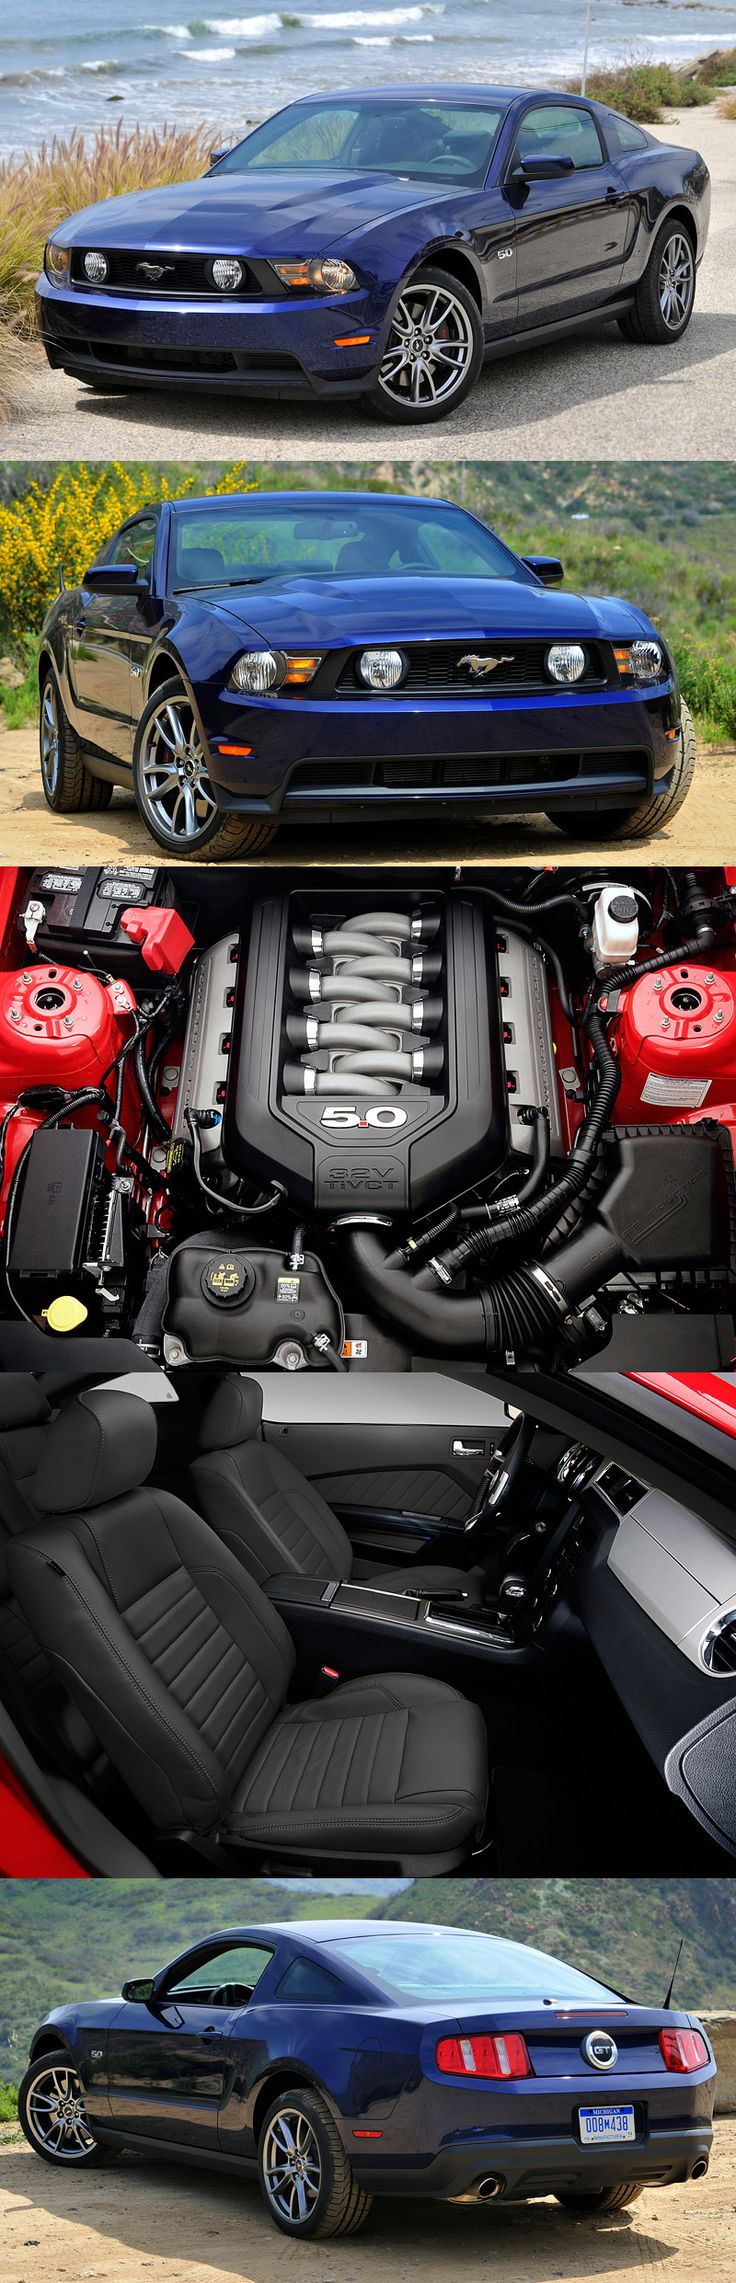 The new ford mustang 5 0 gt is one hell of an engine